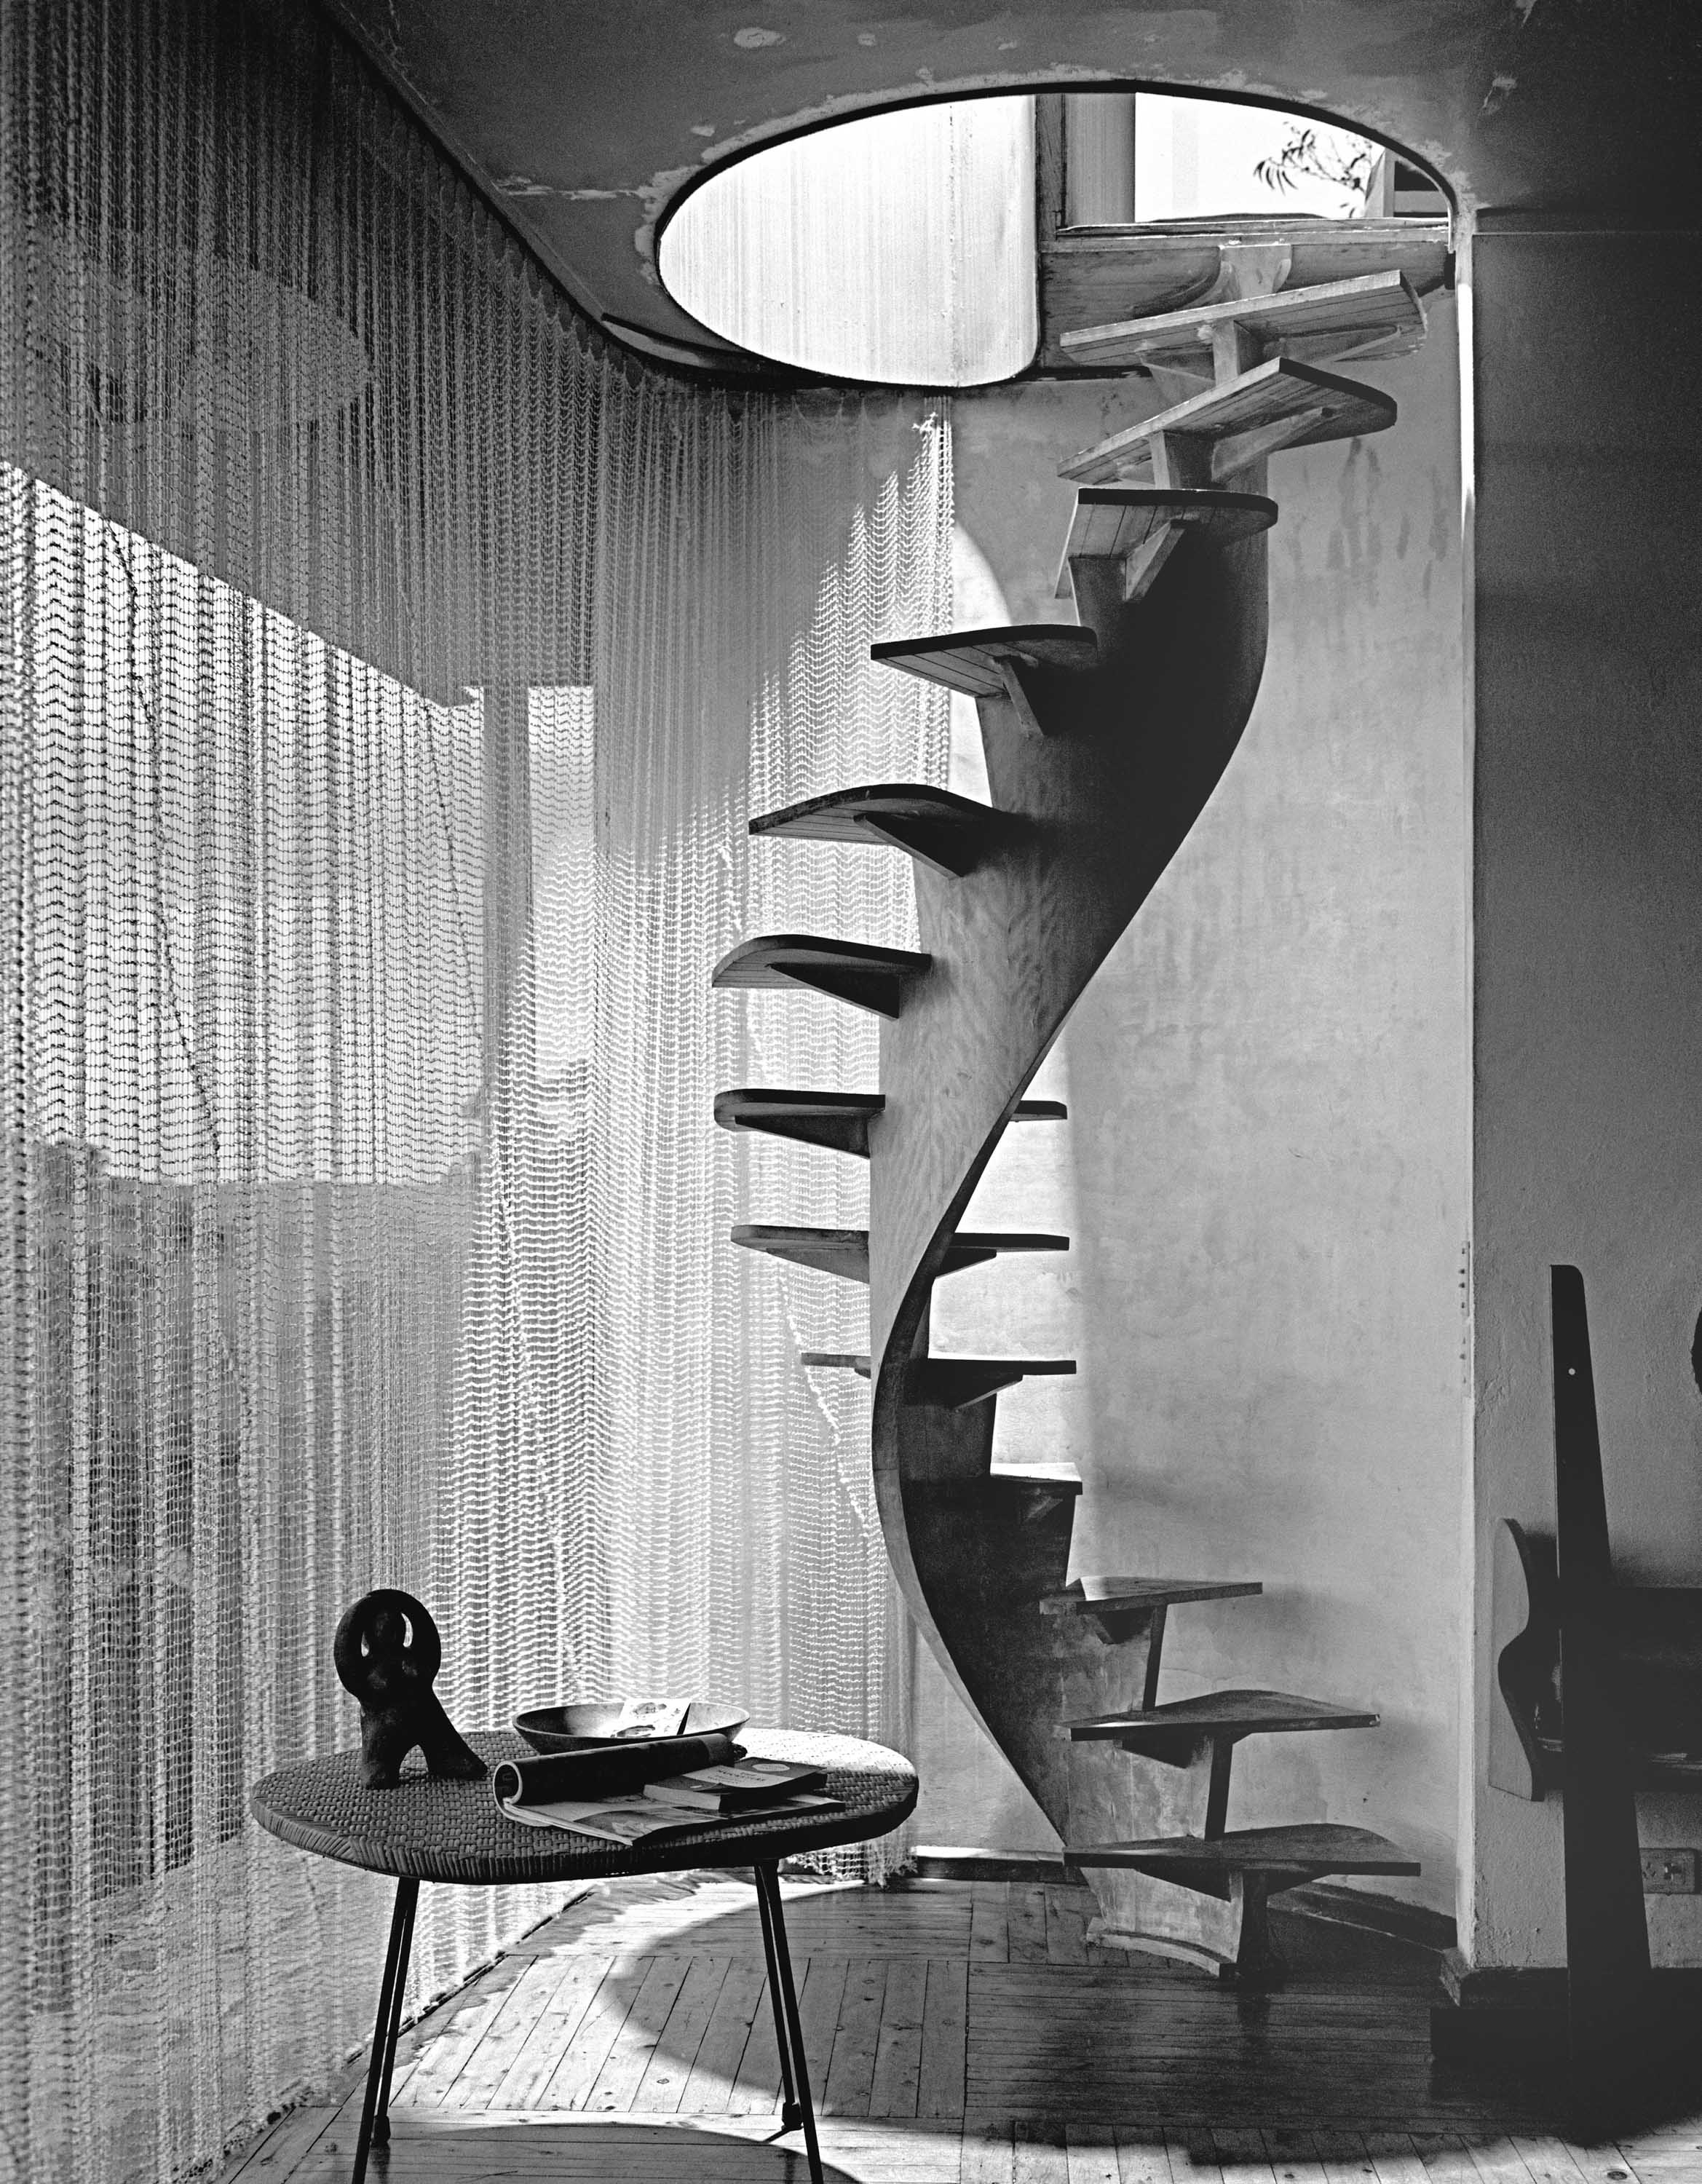 Buhrich House I, Castlecrag, designed by Hugh Buhrich, Max Dupain, 1958. Max Dupain Exhibition Archive: 2975A, State Library of NSW. Courtesy and !E J W Thompson Australia